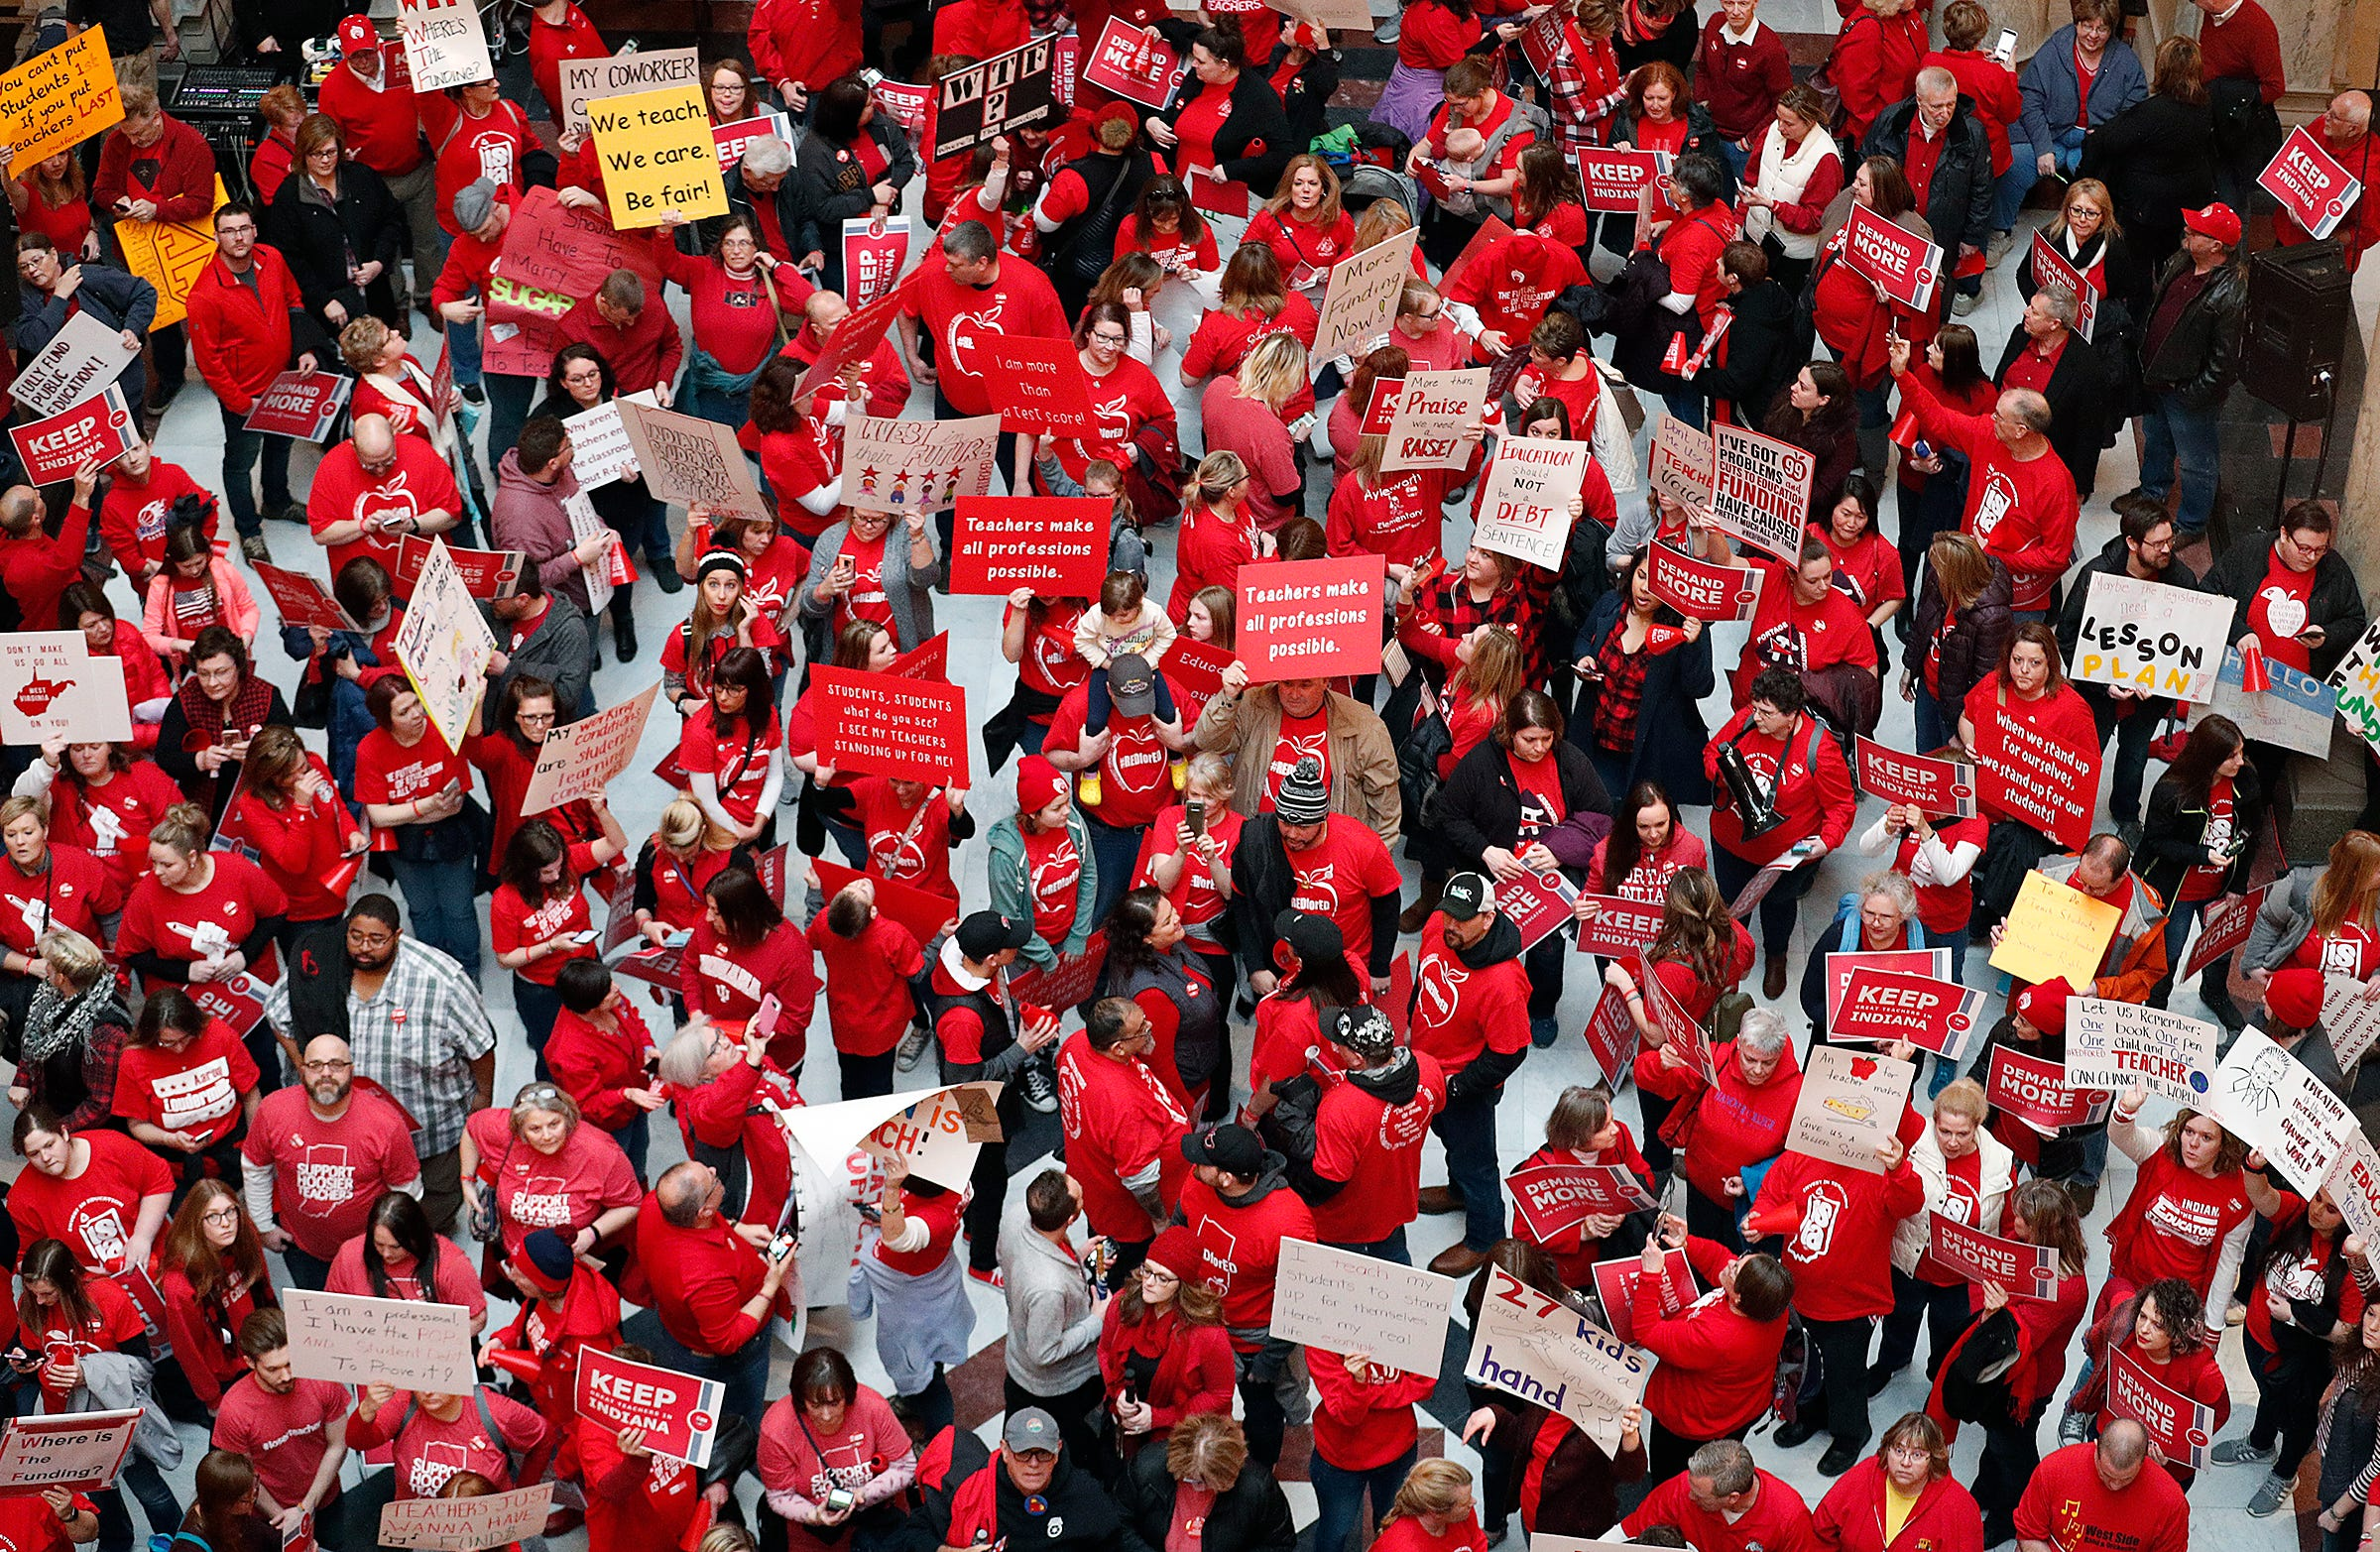 Thousands expected for Red for Ed Action Day at the Statehouse. Here's why they're marching.